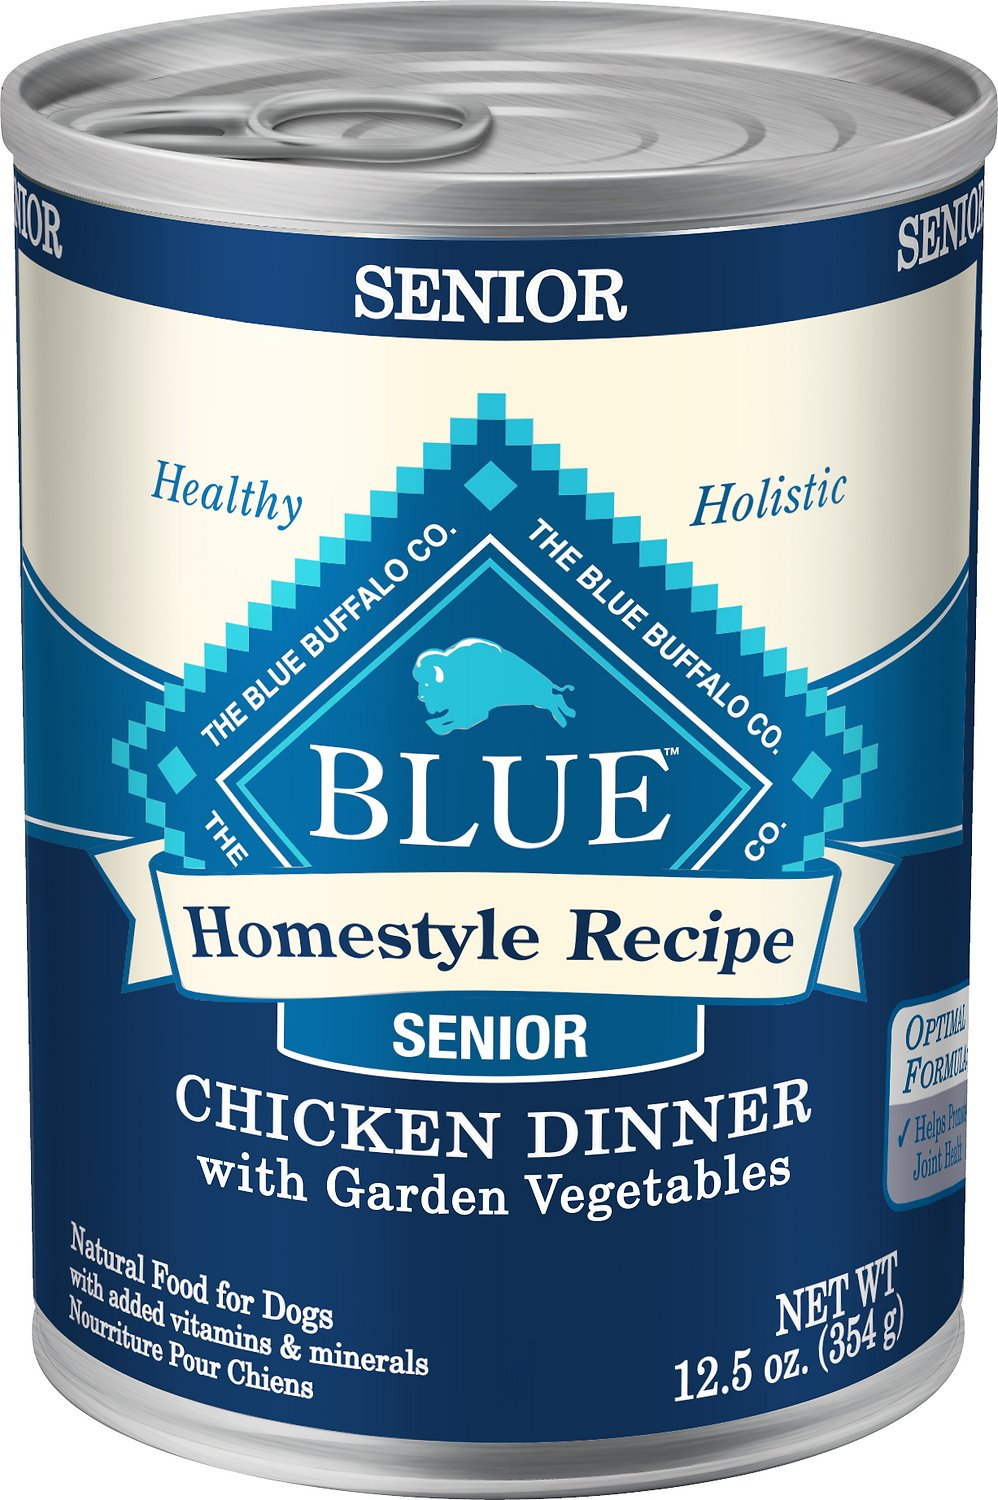 Blue Buffalo Homestyle Recipe Senior Chicken Dinner With Garden Vegetables Canned Dog Food 125